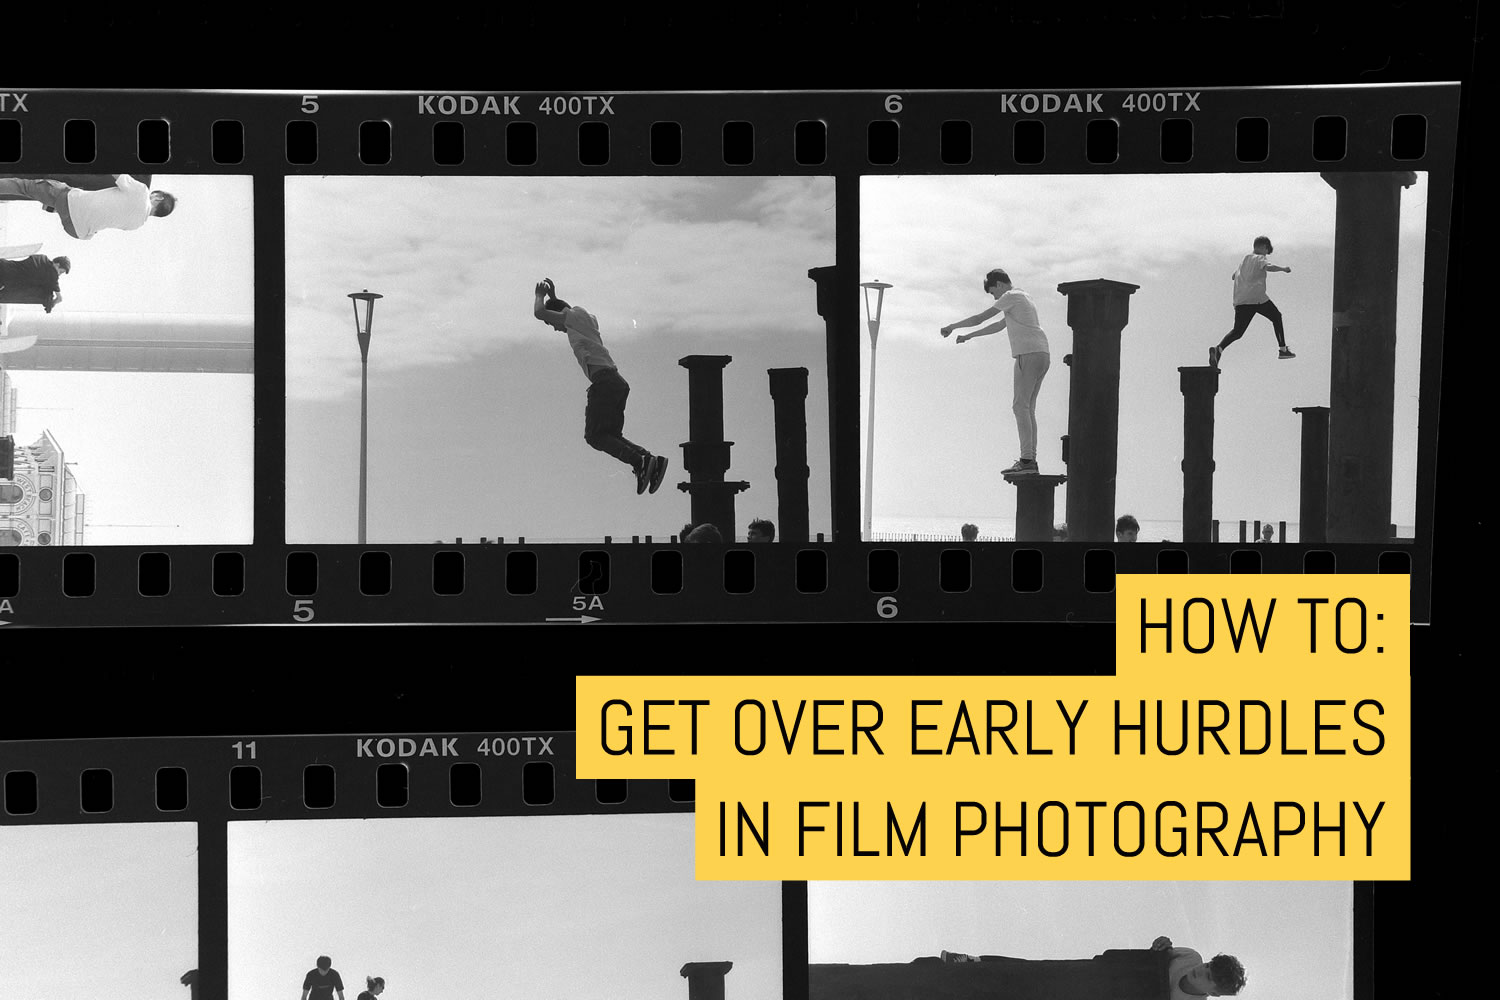 How to: Get over early hurdles in film photography